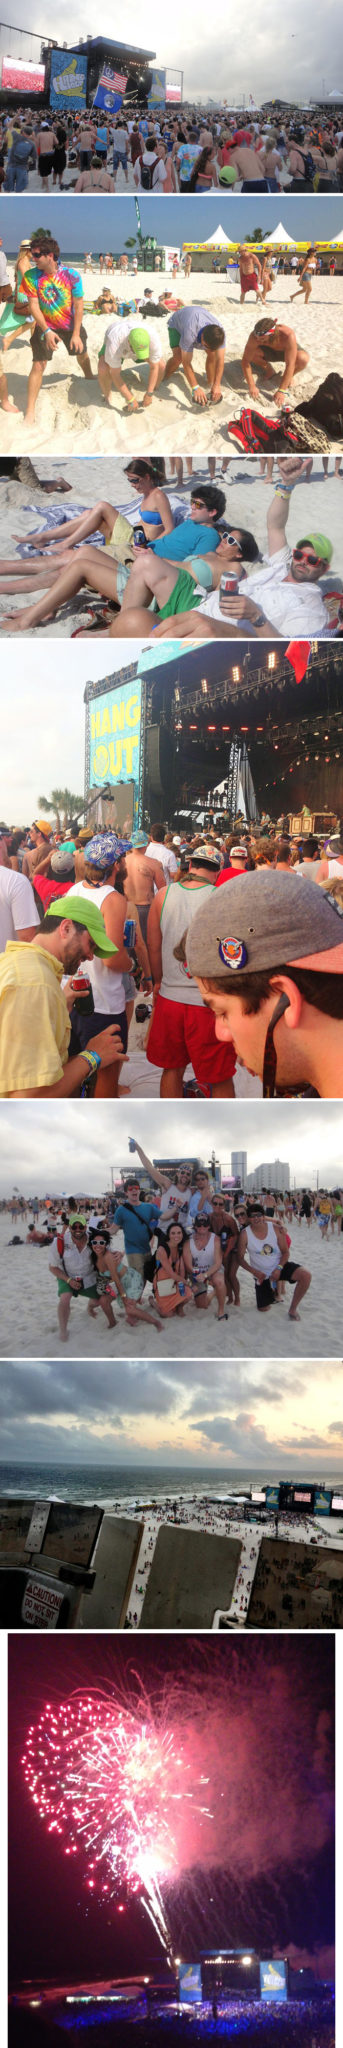 Hangout Festival Recap Photos by Hunter B. | Blue Mountain Belle